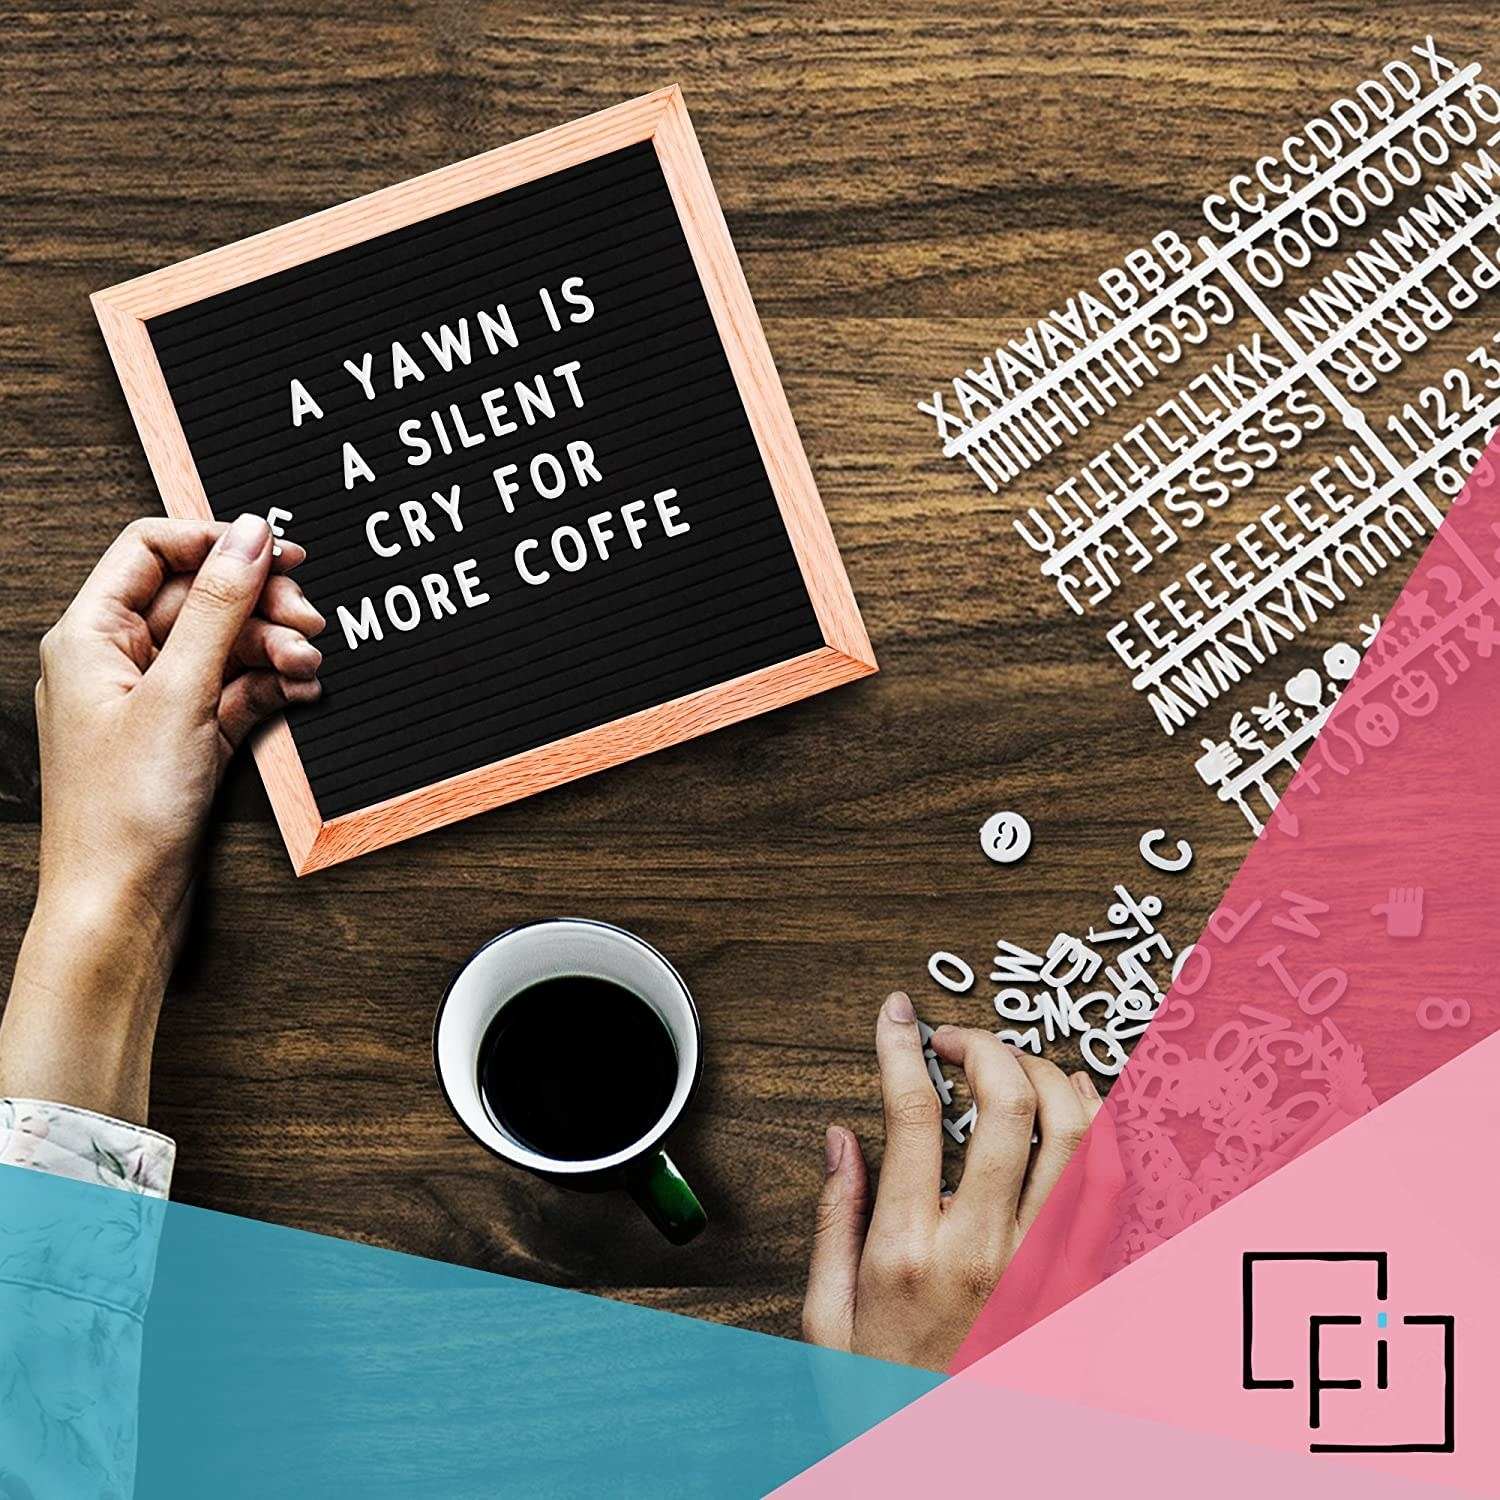 A hand putting felt letters on the board to spell out A yawn is a silent cry for more coffee